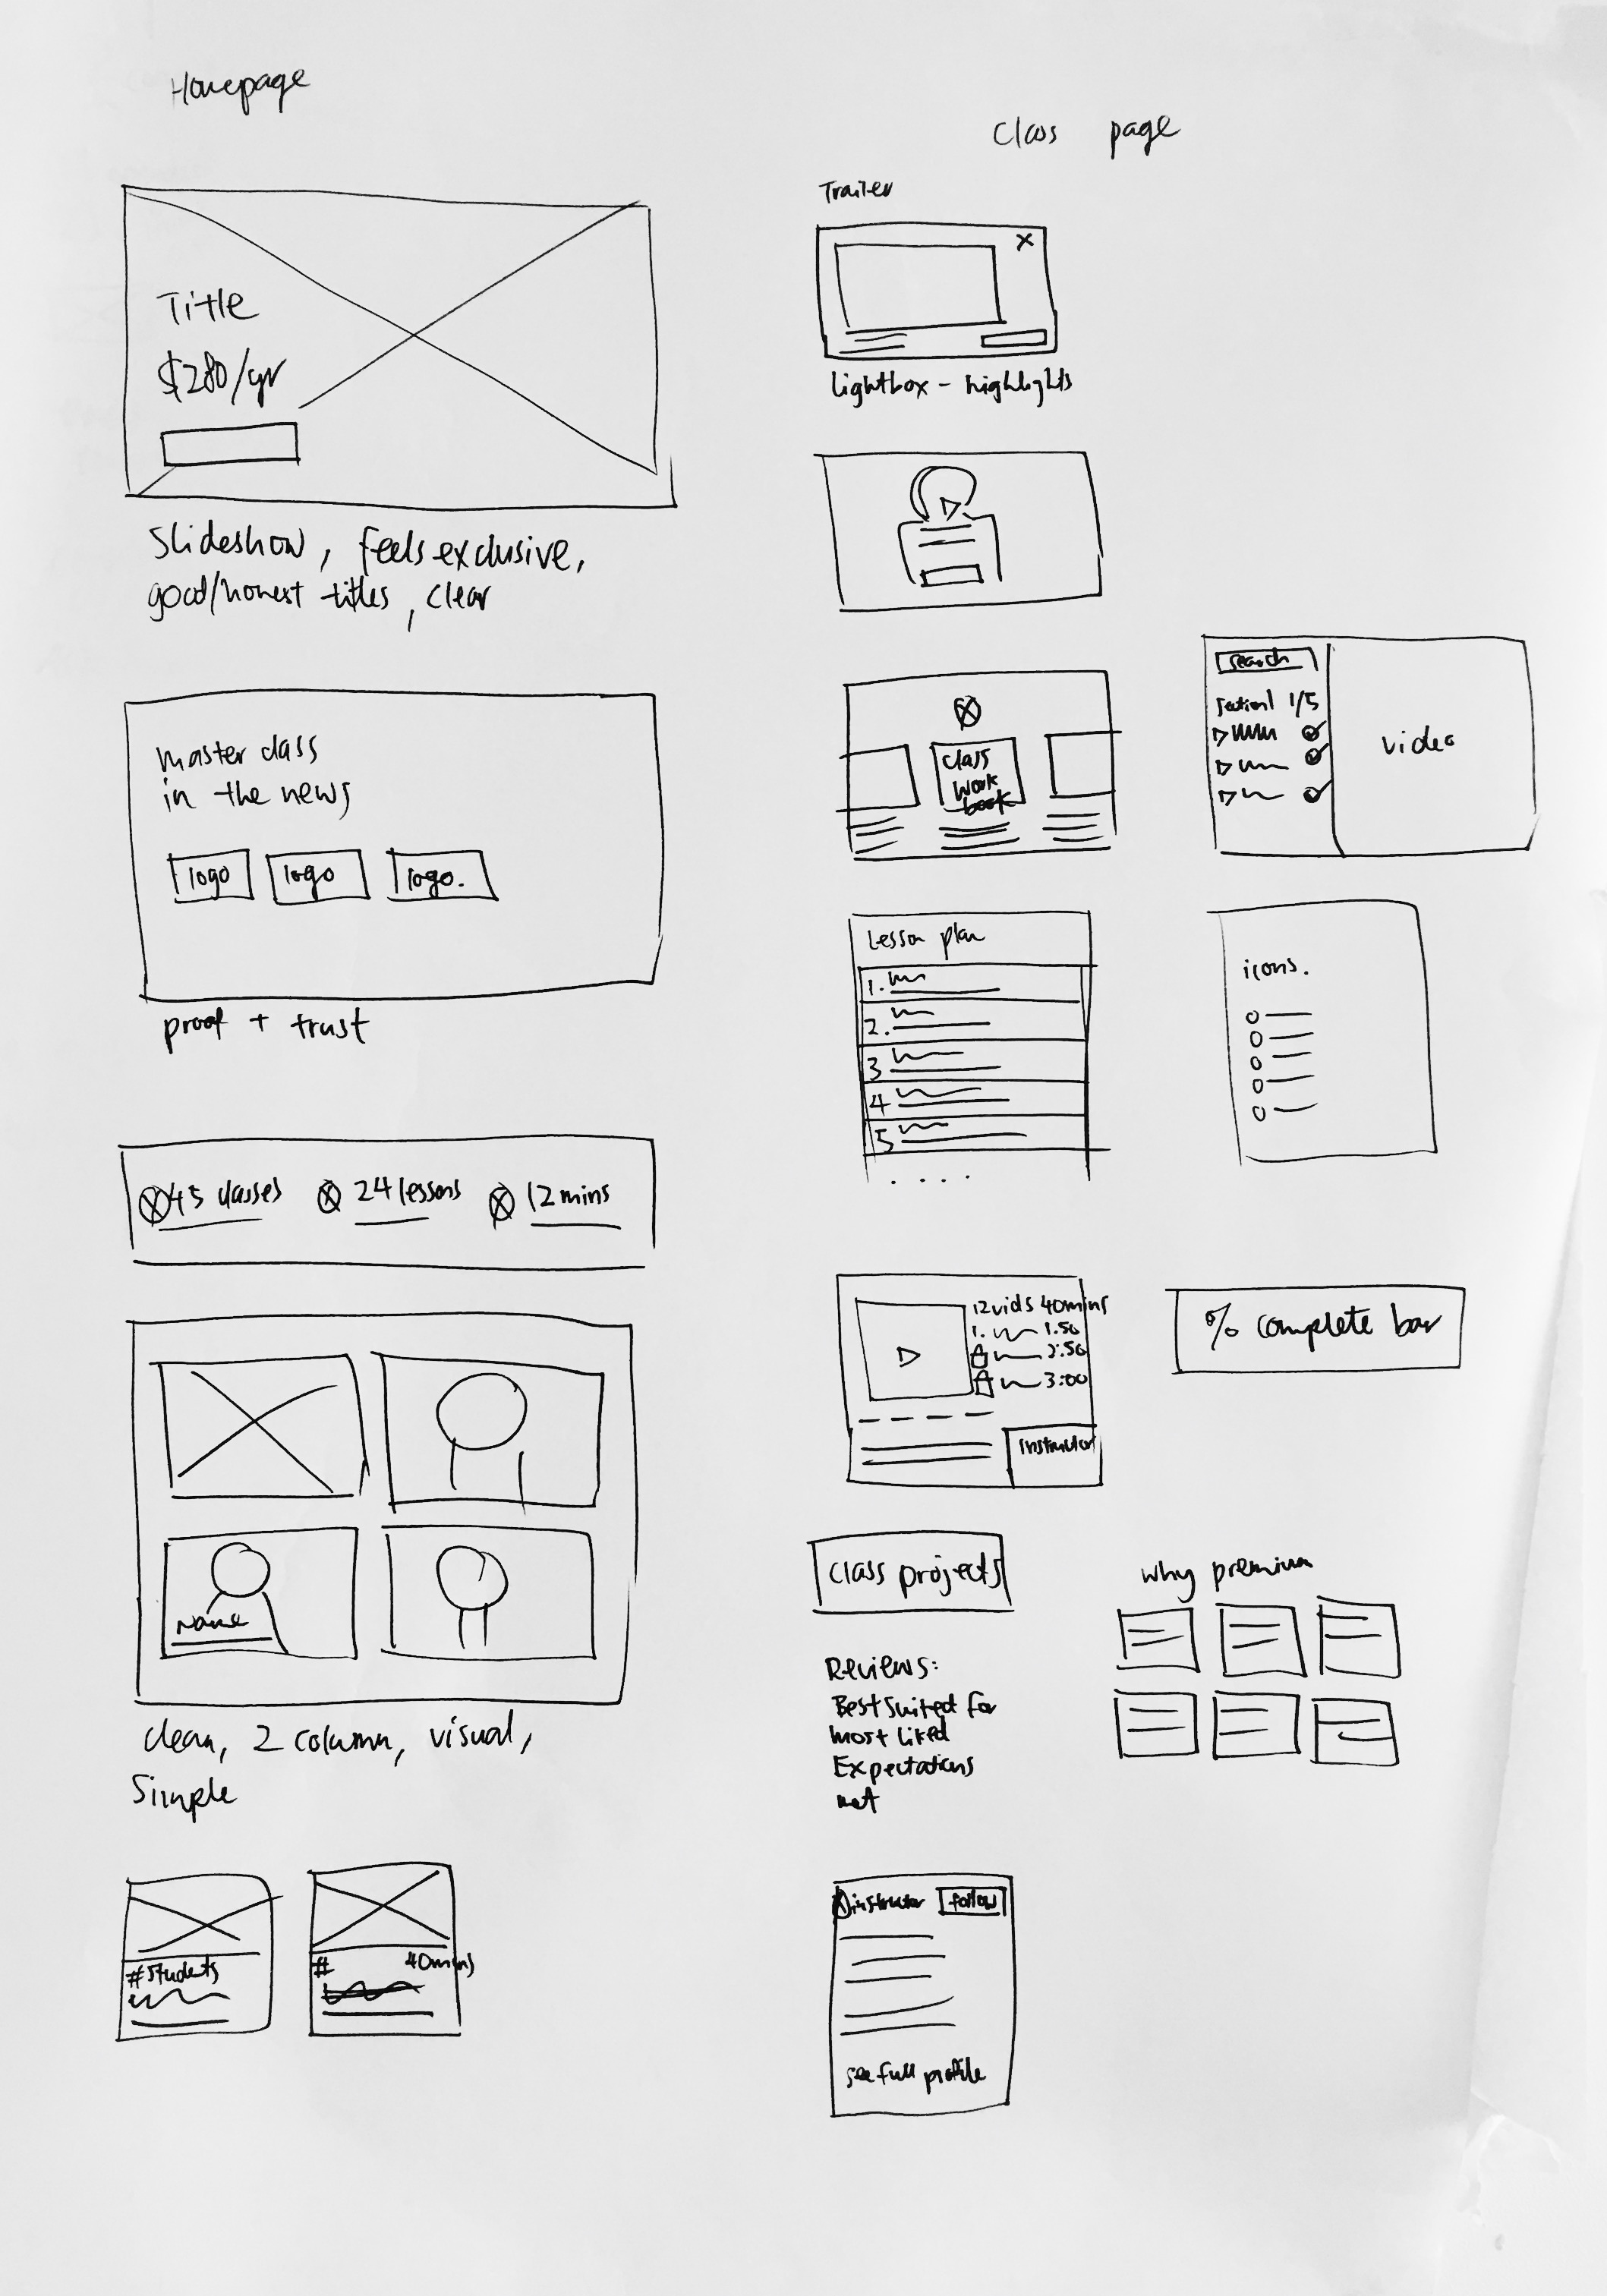 Above: Sketches from lightening demo's. This was helpful when we had to sketch ideas of solutions as we could use this as reference.